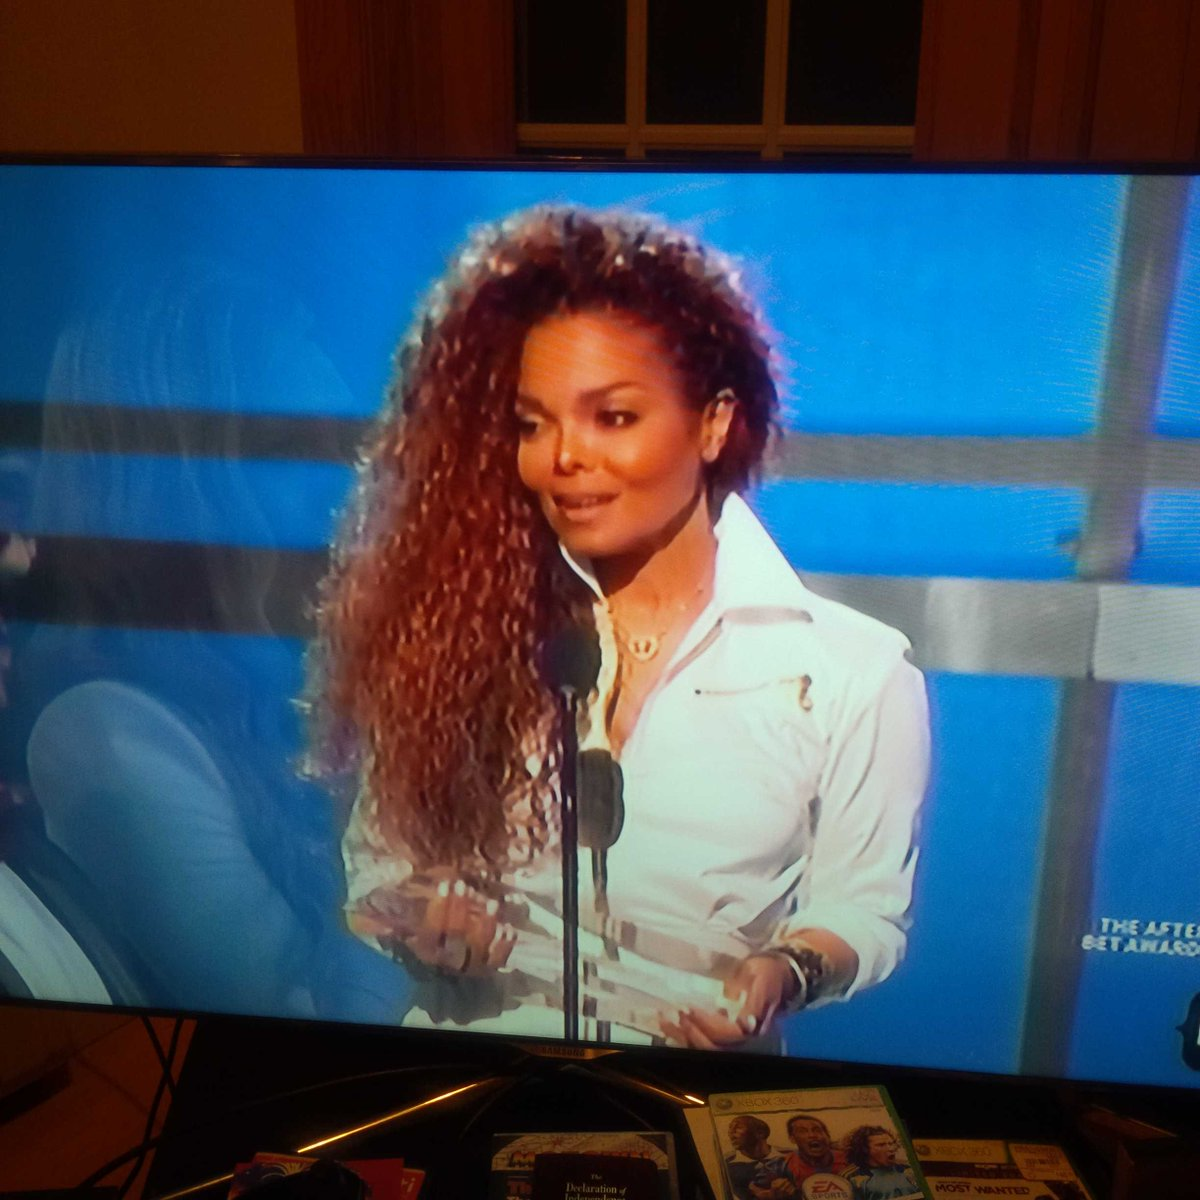 #janetjackson looks amazing! Beautiful. Humble. @BETawards15 http://t.co/2nz2GHvOfI